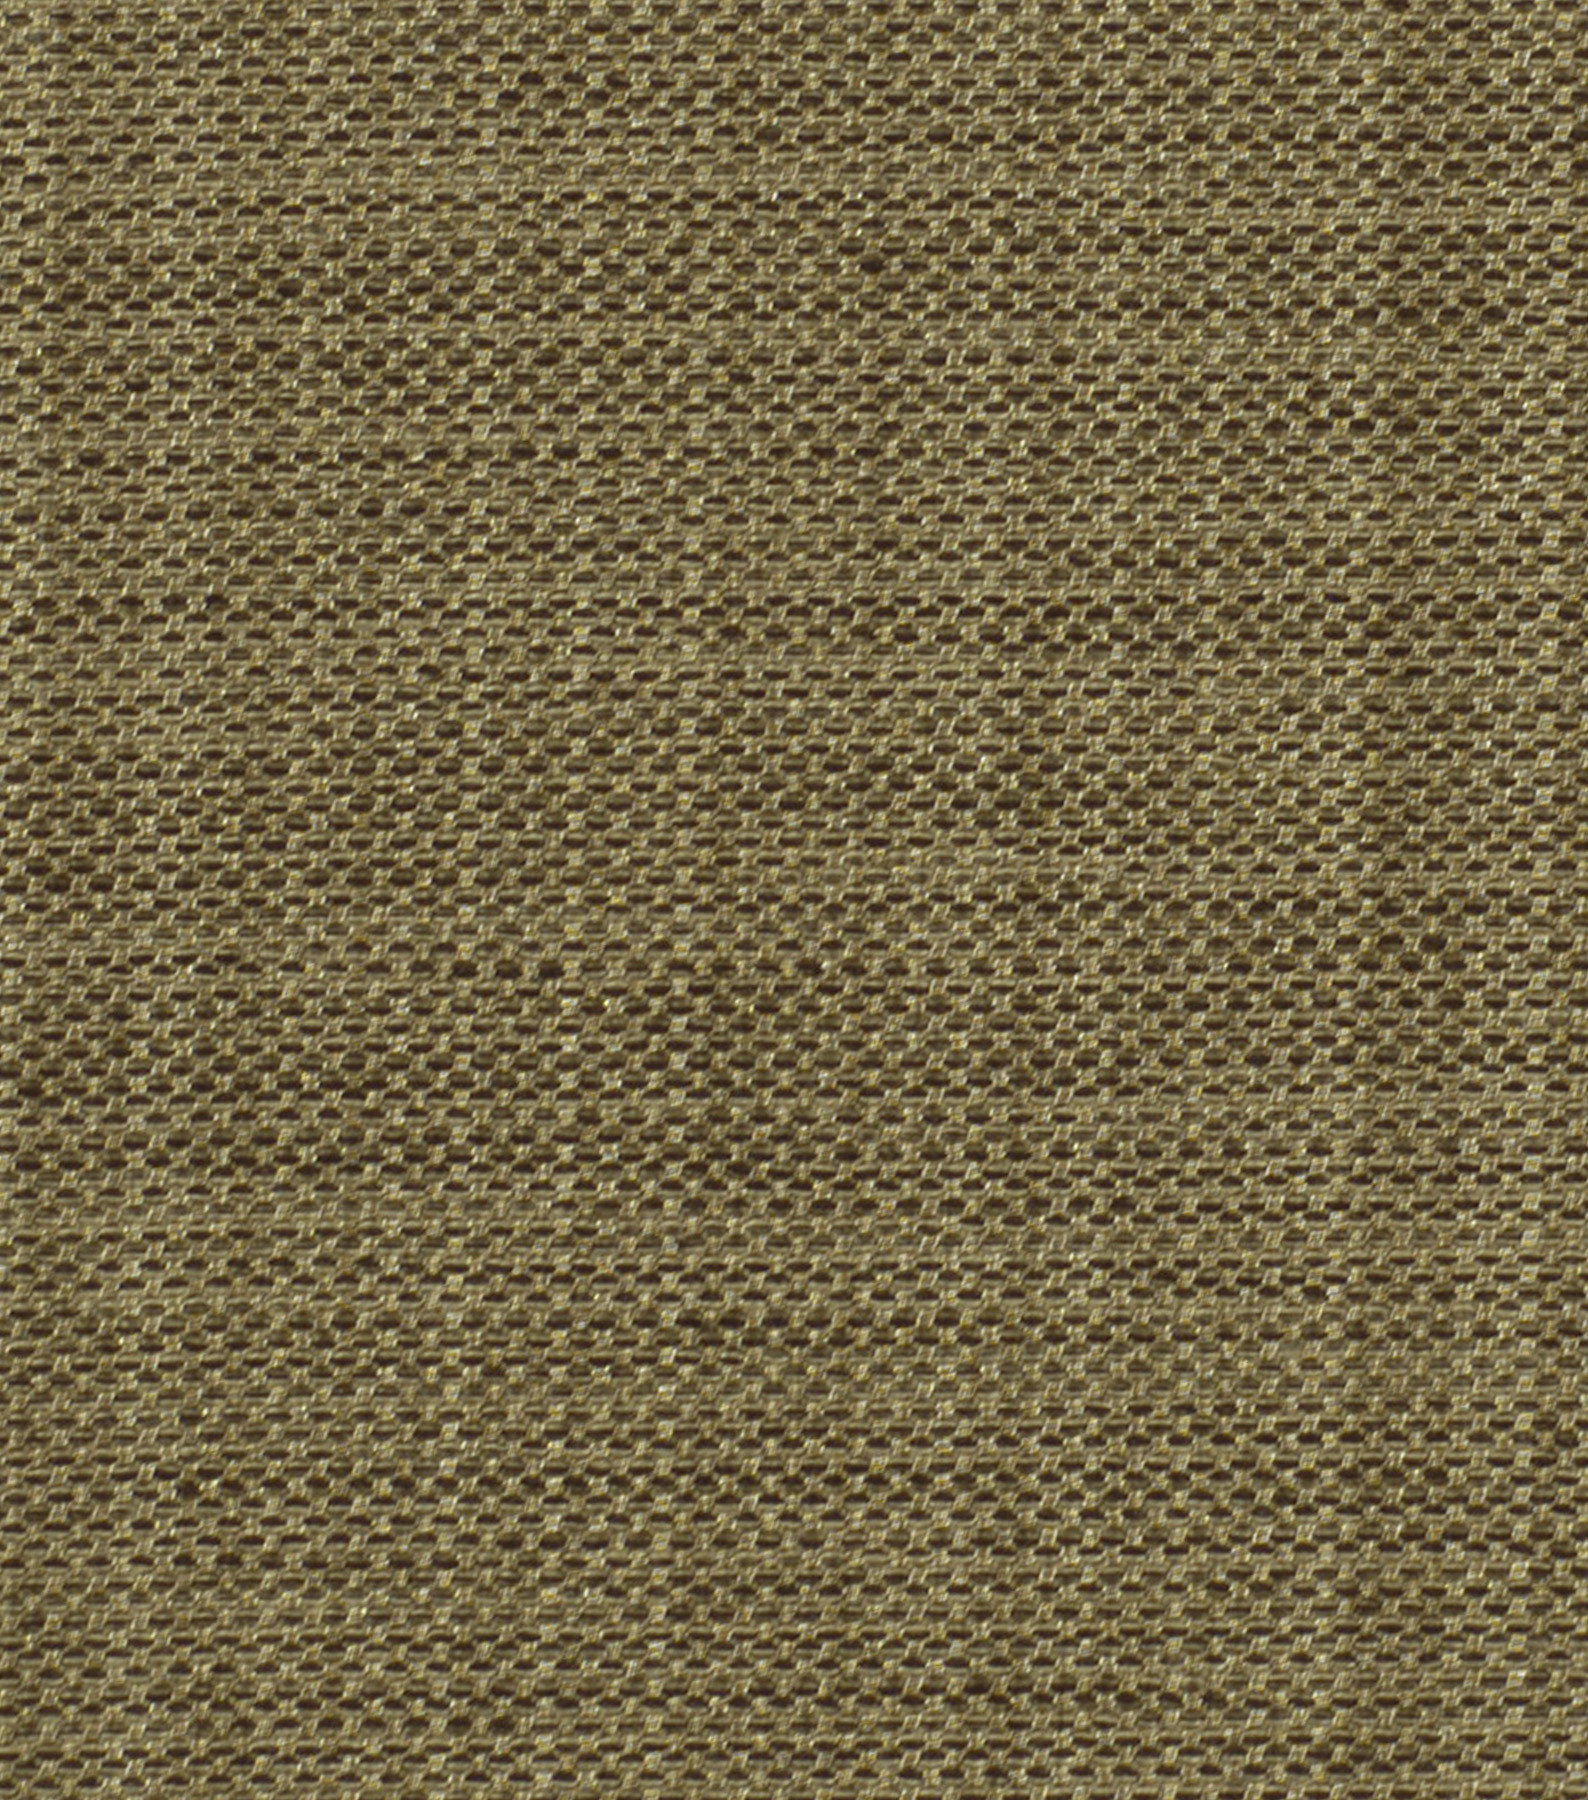 Home Decor 8\u0022x8\u0022 Fabric Swatch-Solid Fabric Signature Series Botkier Ash